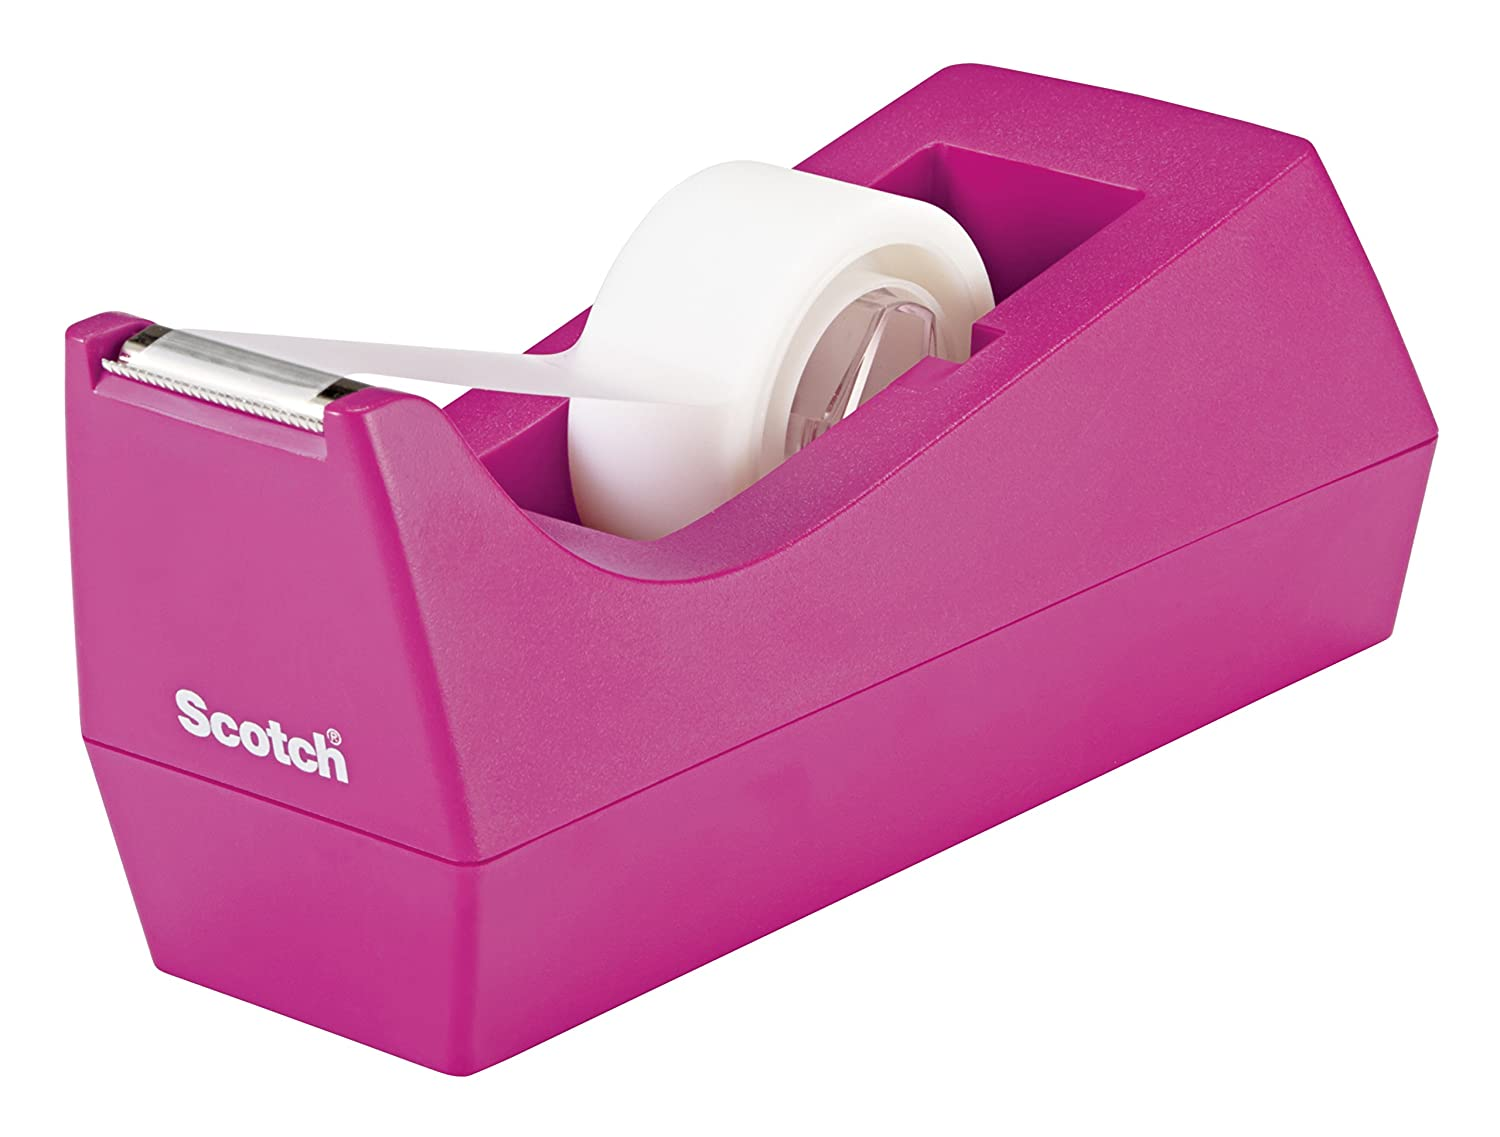 Scotch Classic Desktop Tape Dispenser, Pink, for 1-Inch Core Tapes (C-38-P) 3M